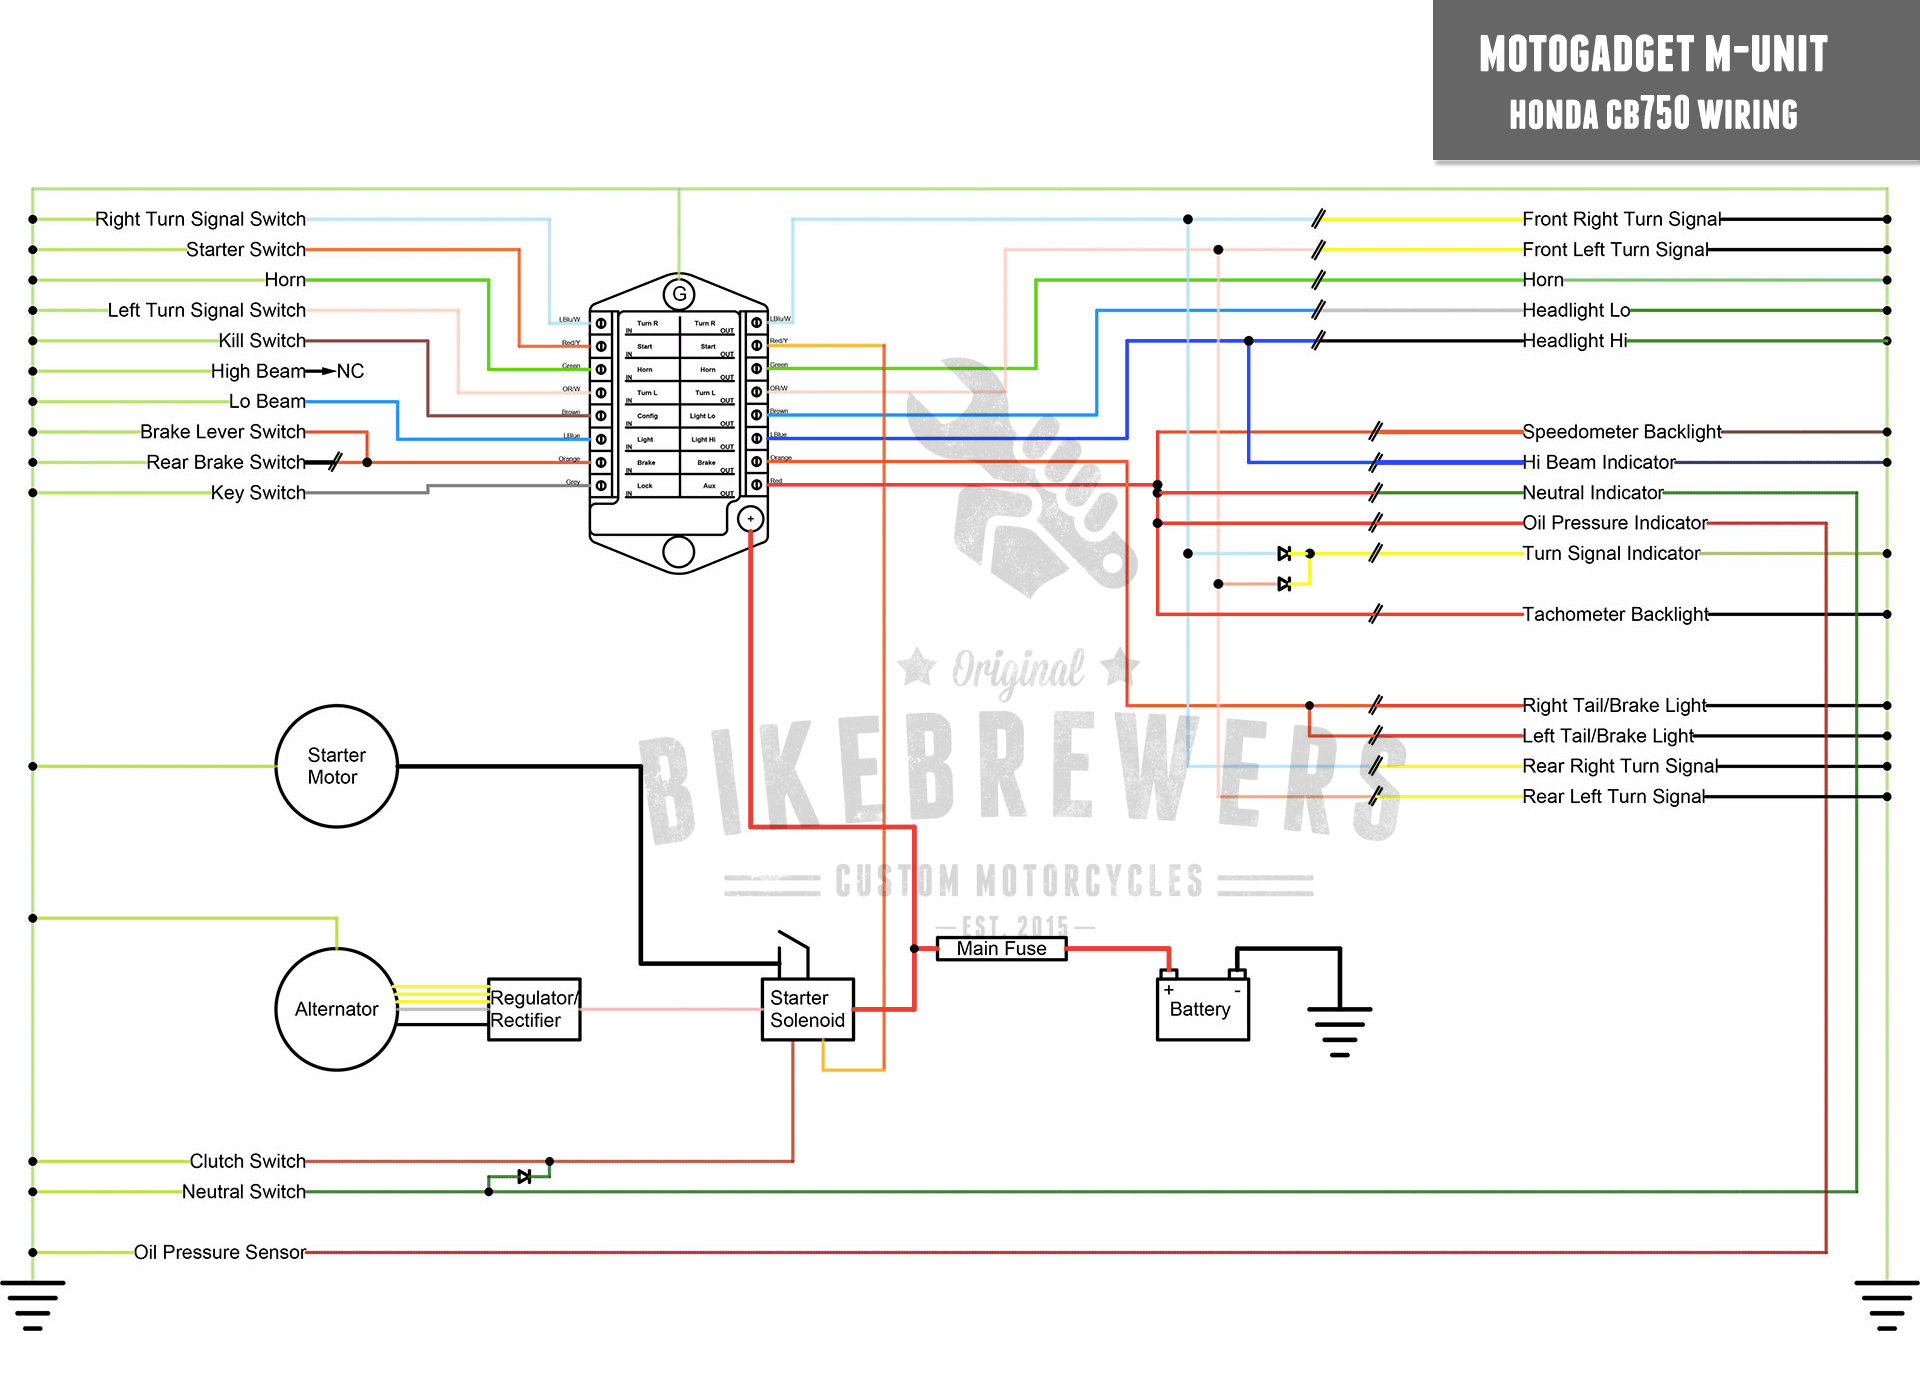 motogadget m unit wiring bikebrewers com rh bikebrewers com Channel 6 D S Ph11 RR Amp Wiring Diagram for A Channel 6 D S Ph11 RR Amp Wiring Diagram for A